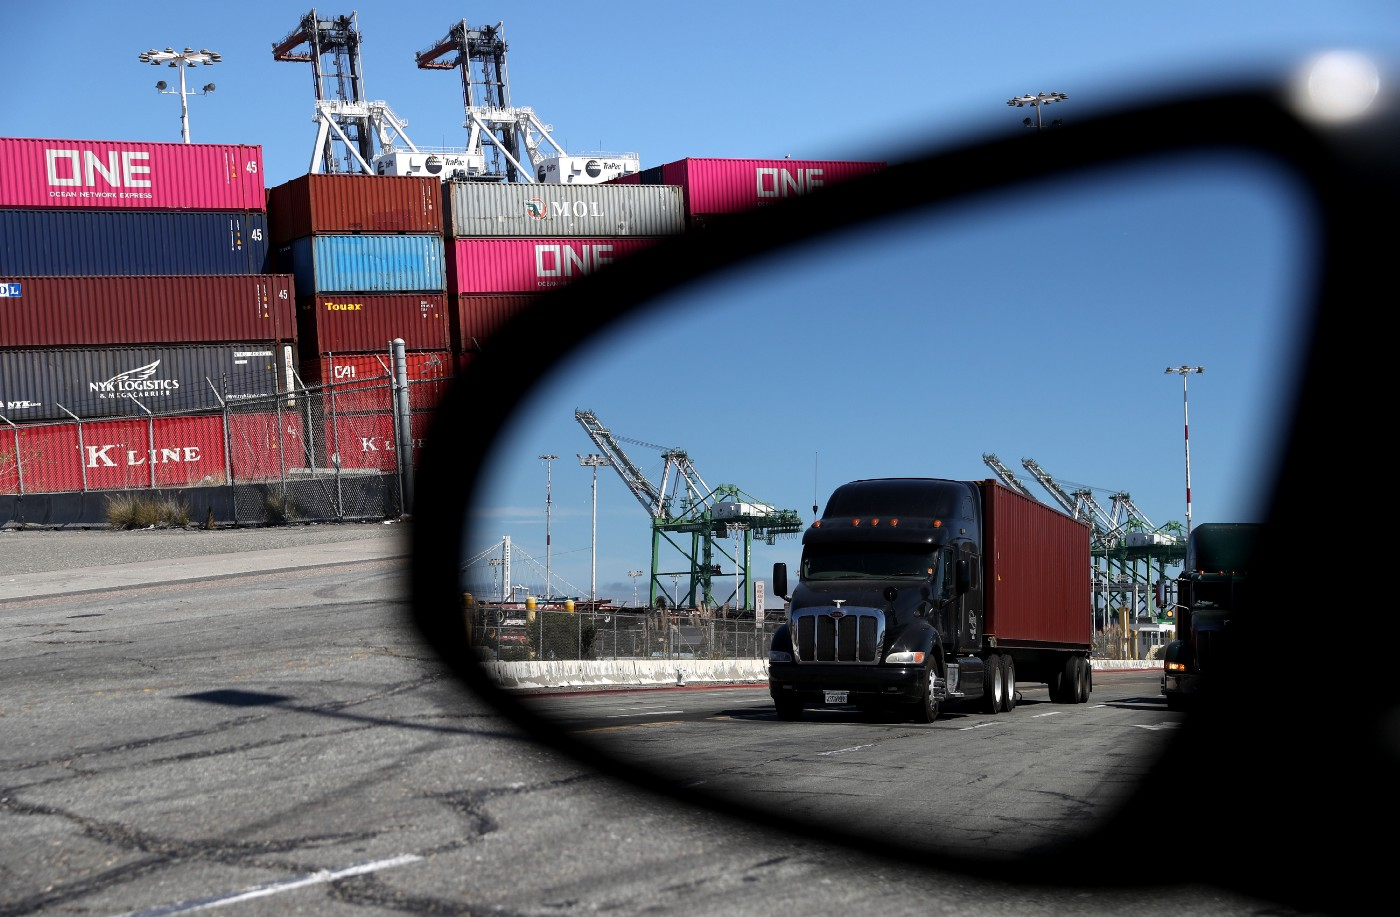 A truck loaded with a shipping container drives through the Port of Oakland on September 03, 2019 in Oakland, California.